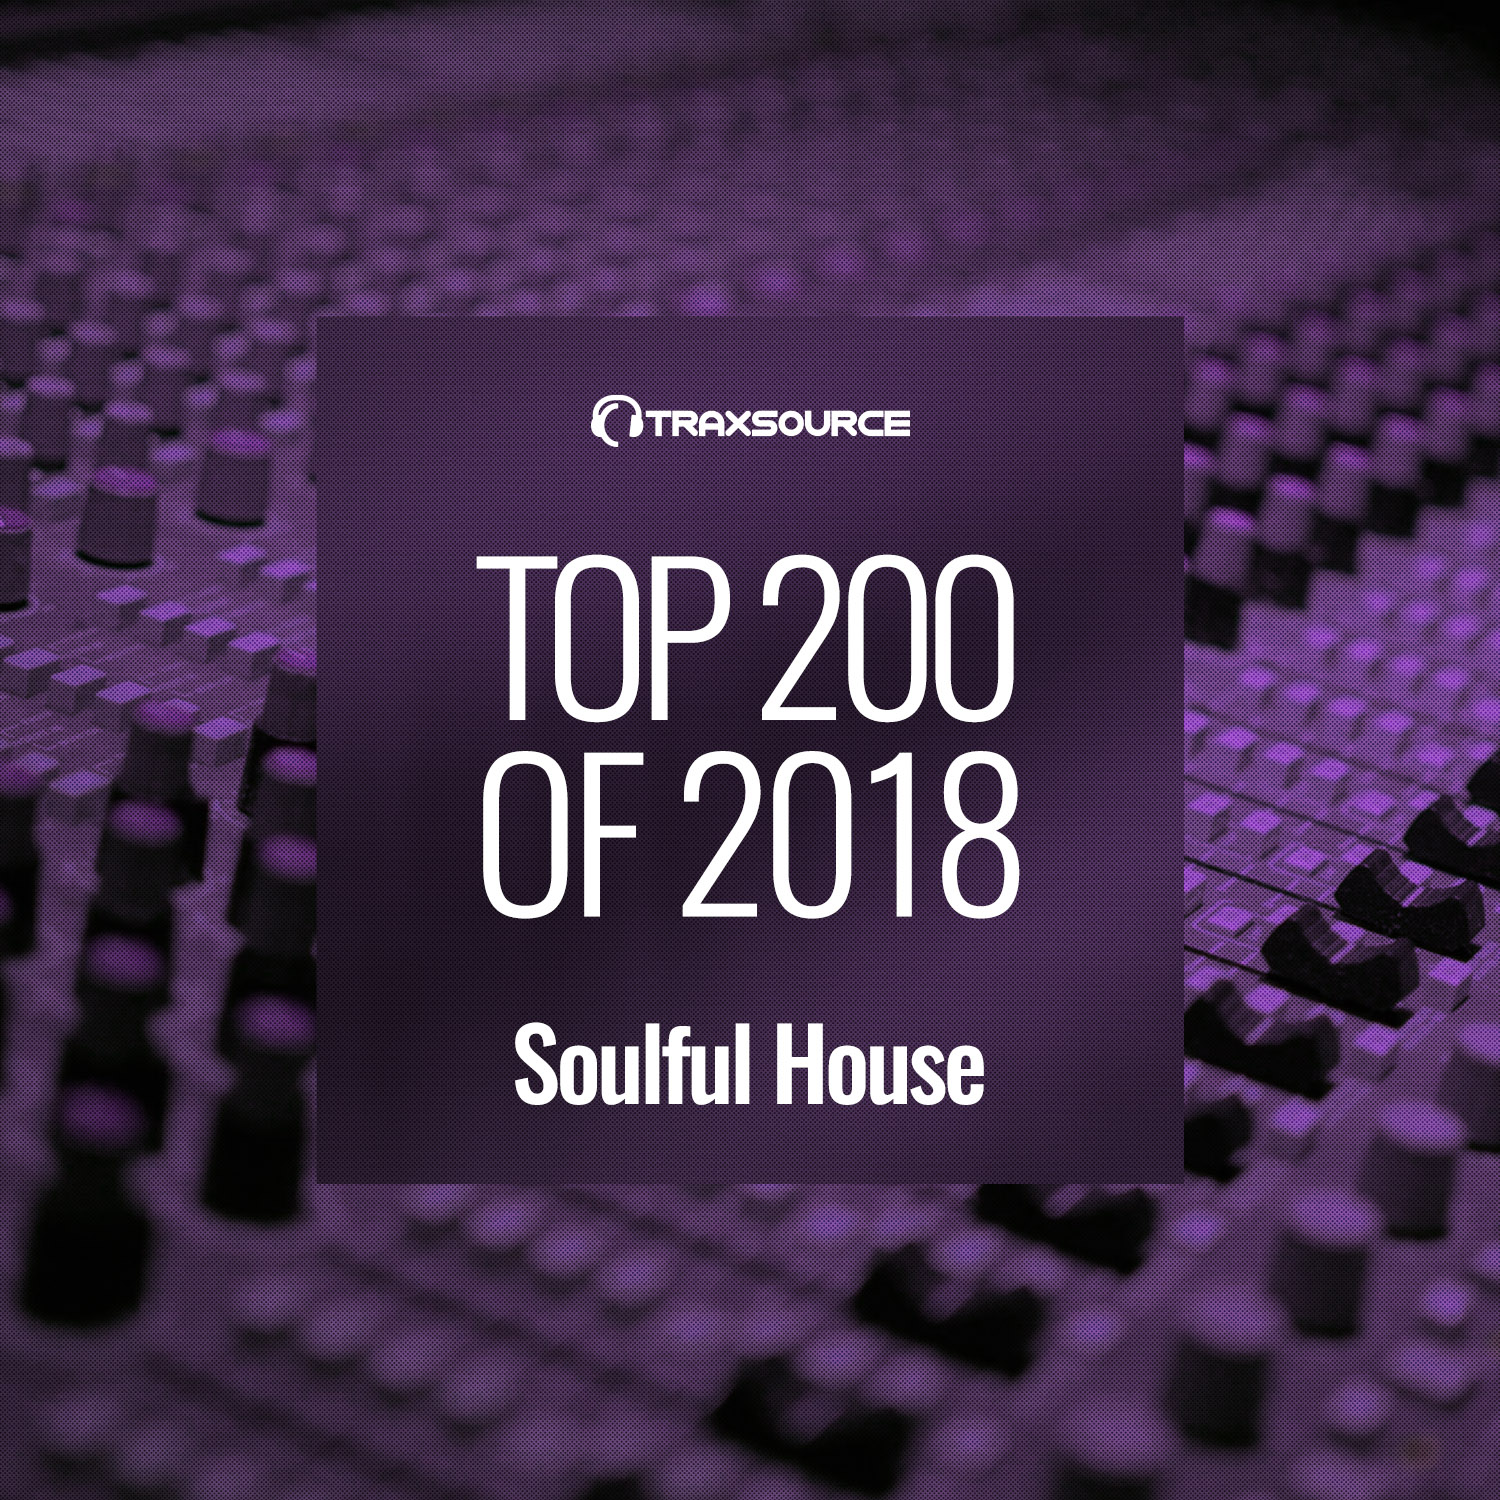 The Traxsource Best of 2018 Has Arrived! - Traxsource News